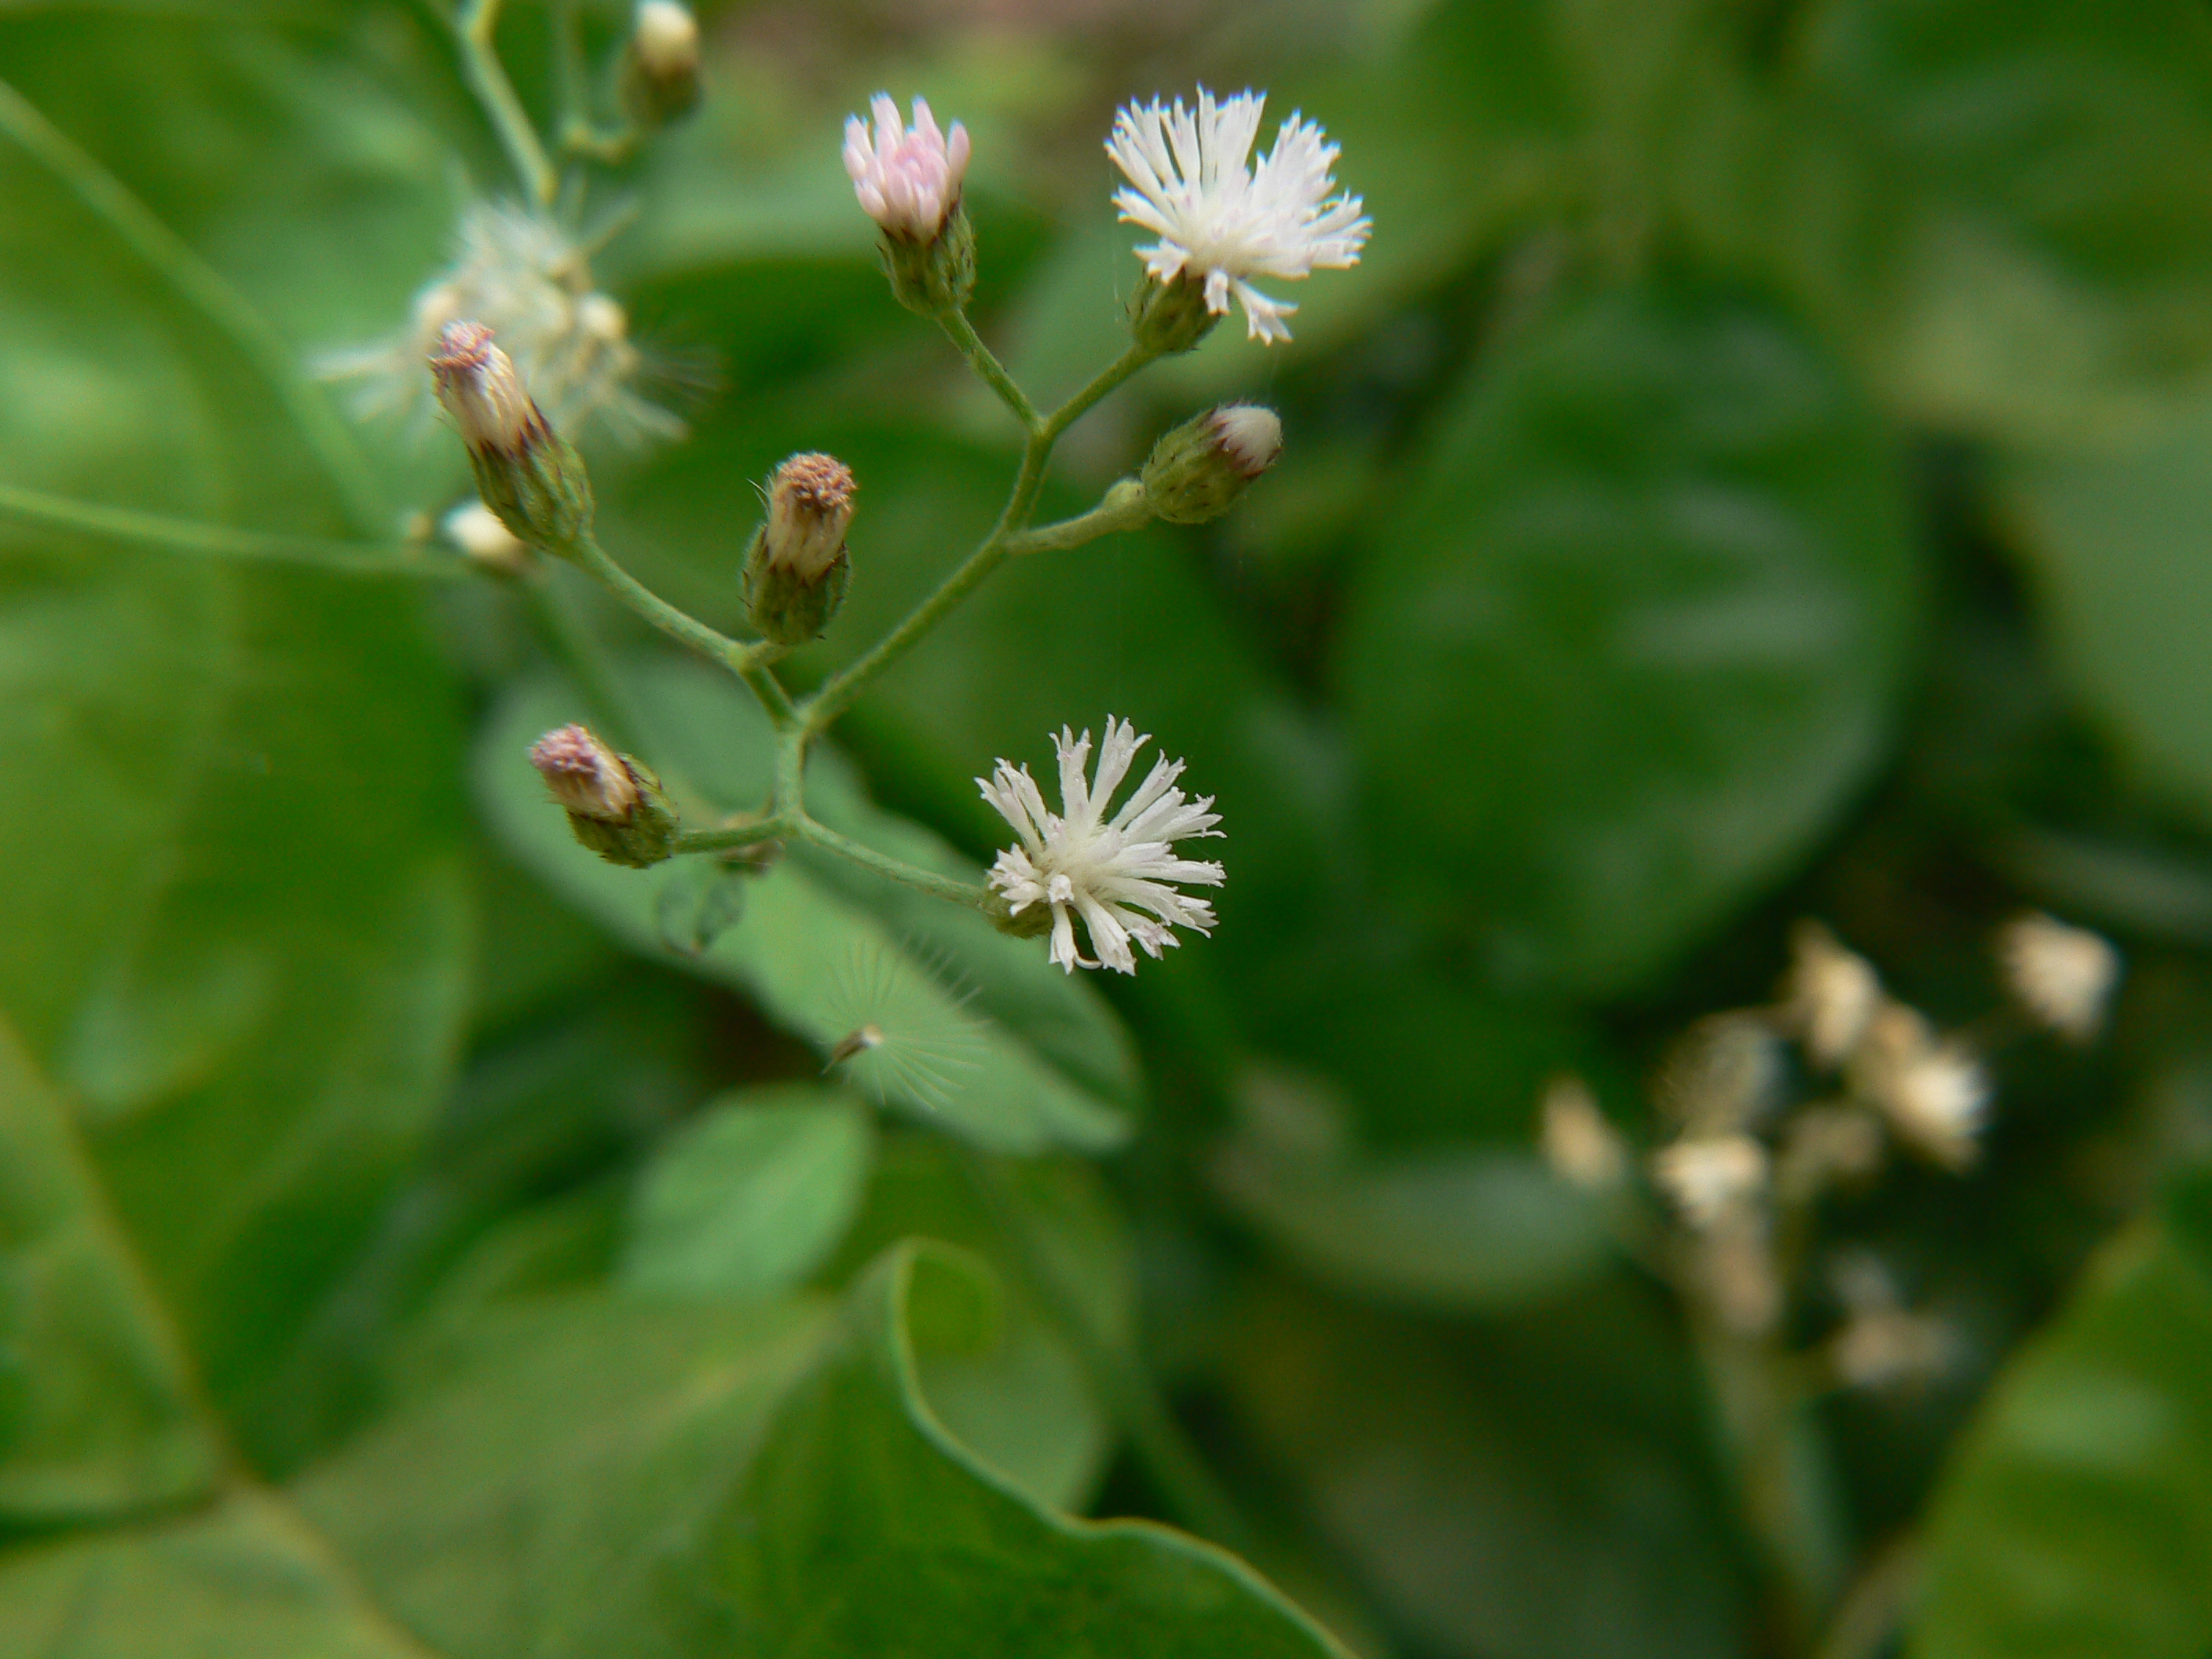 Daisy flower meaning in tamil